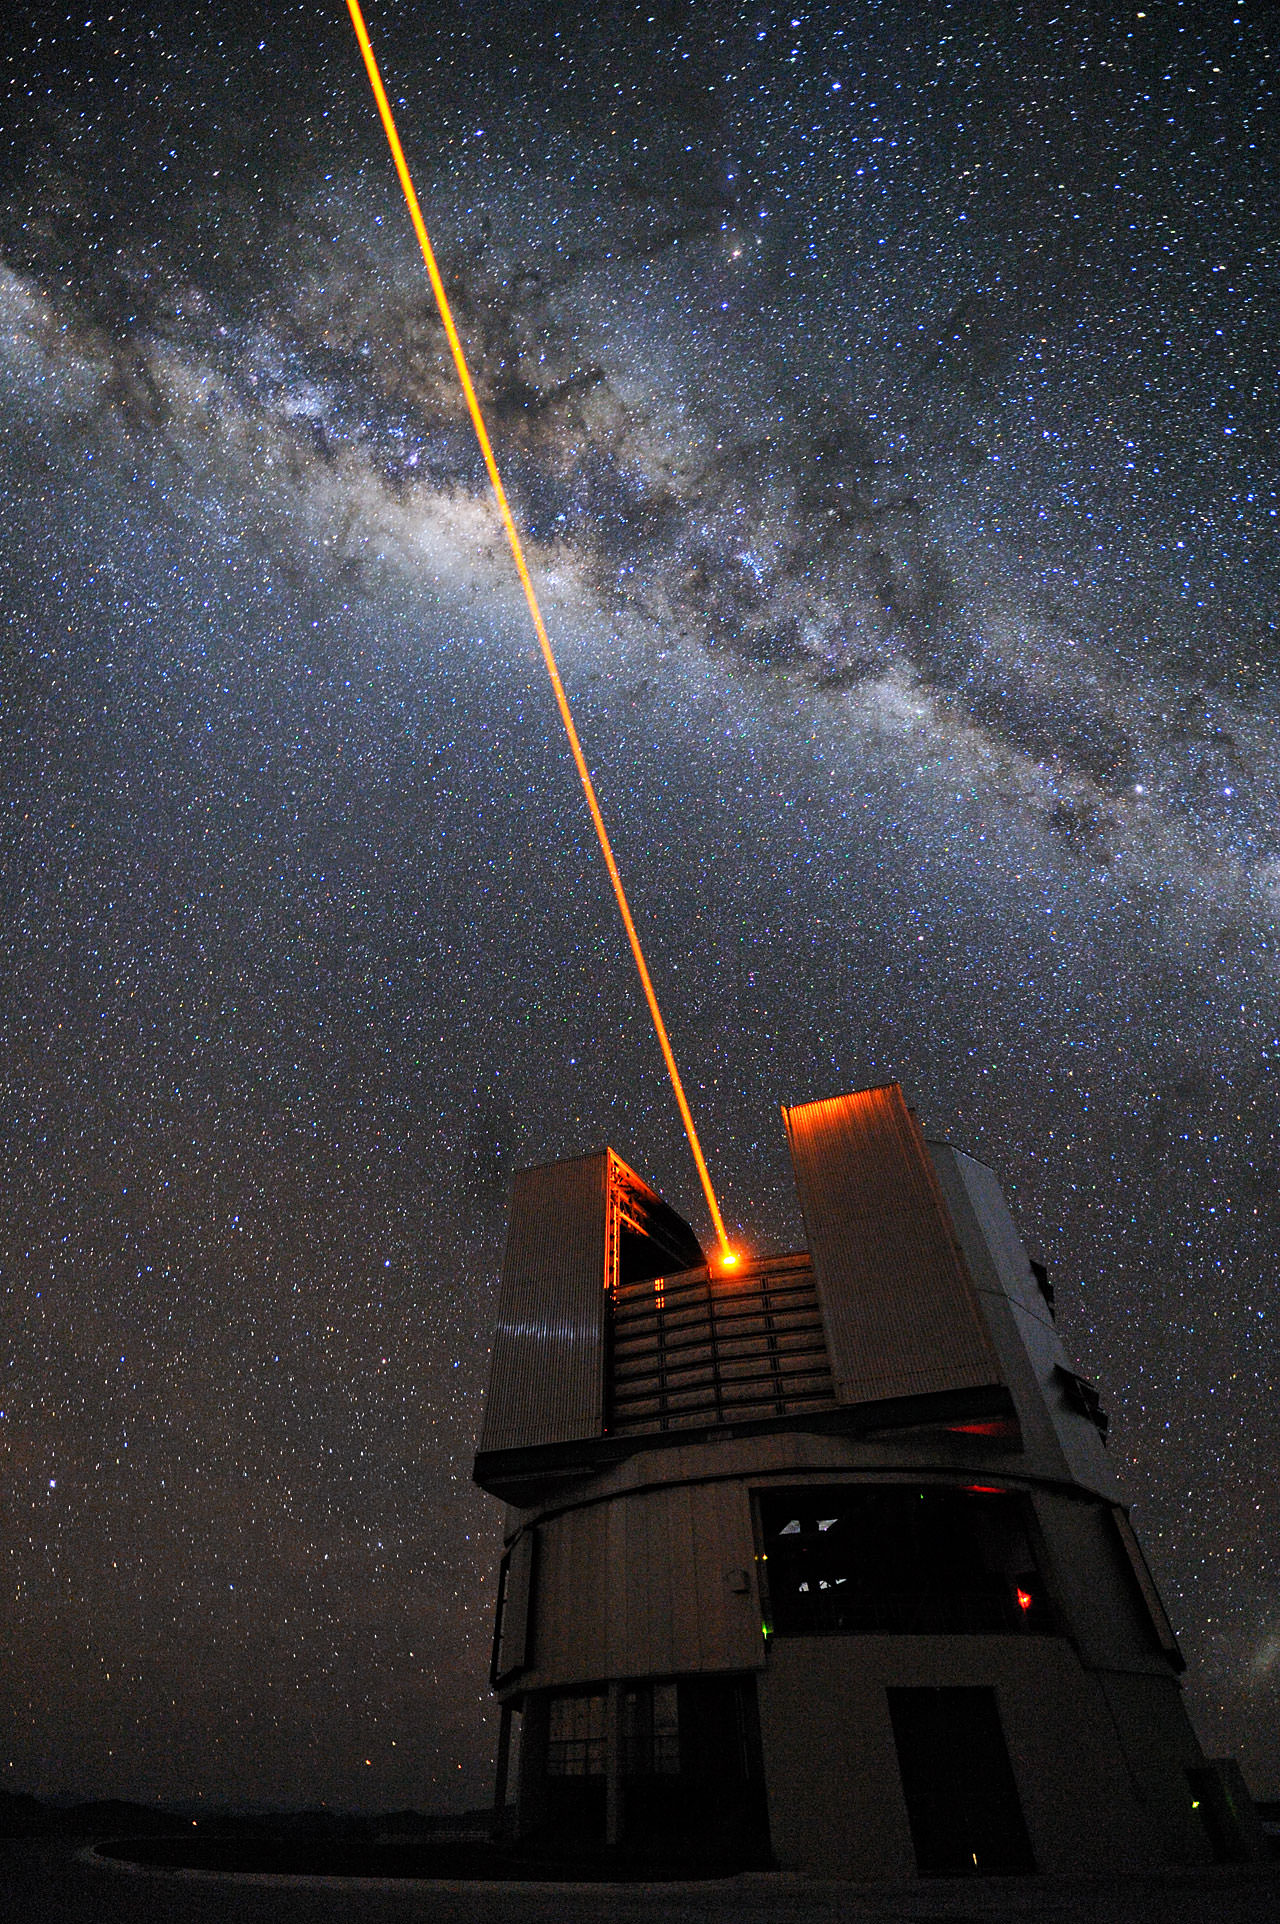 Gieren et al. used the 8.2-m Very Large Telescope (Yepun) to image M33, and deduce the distance to that galaxy (image credit: ESO).